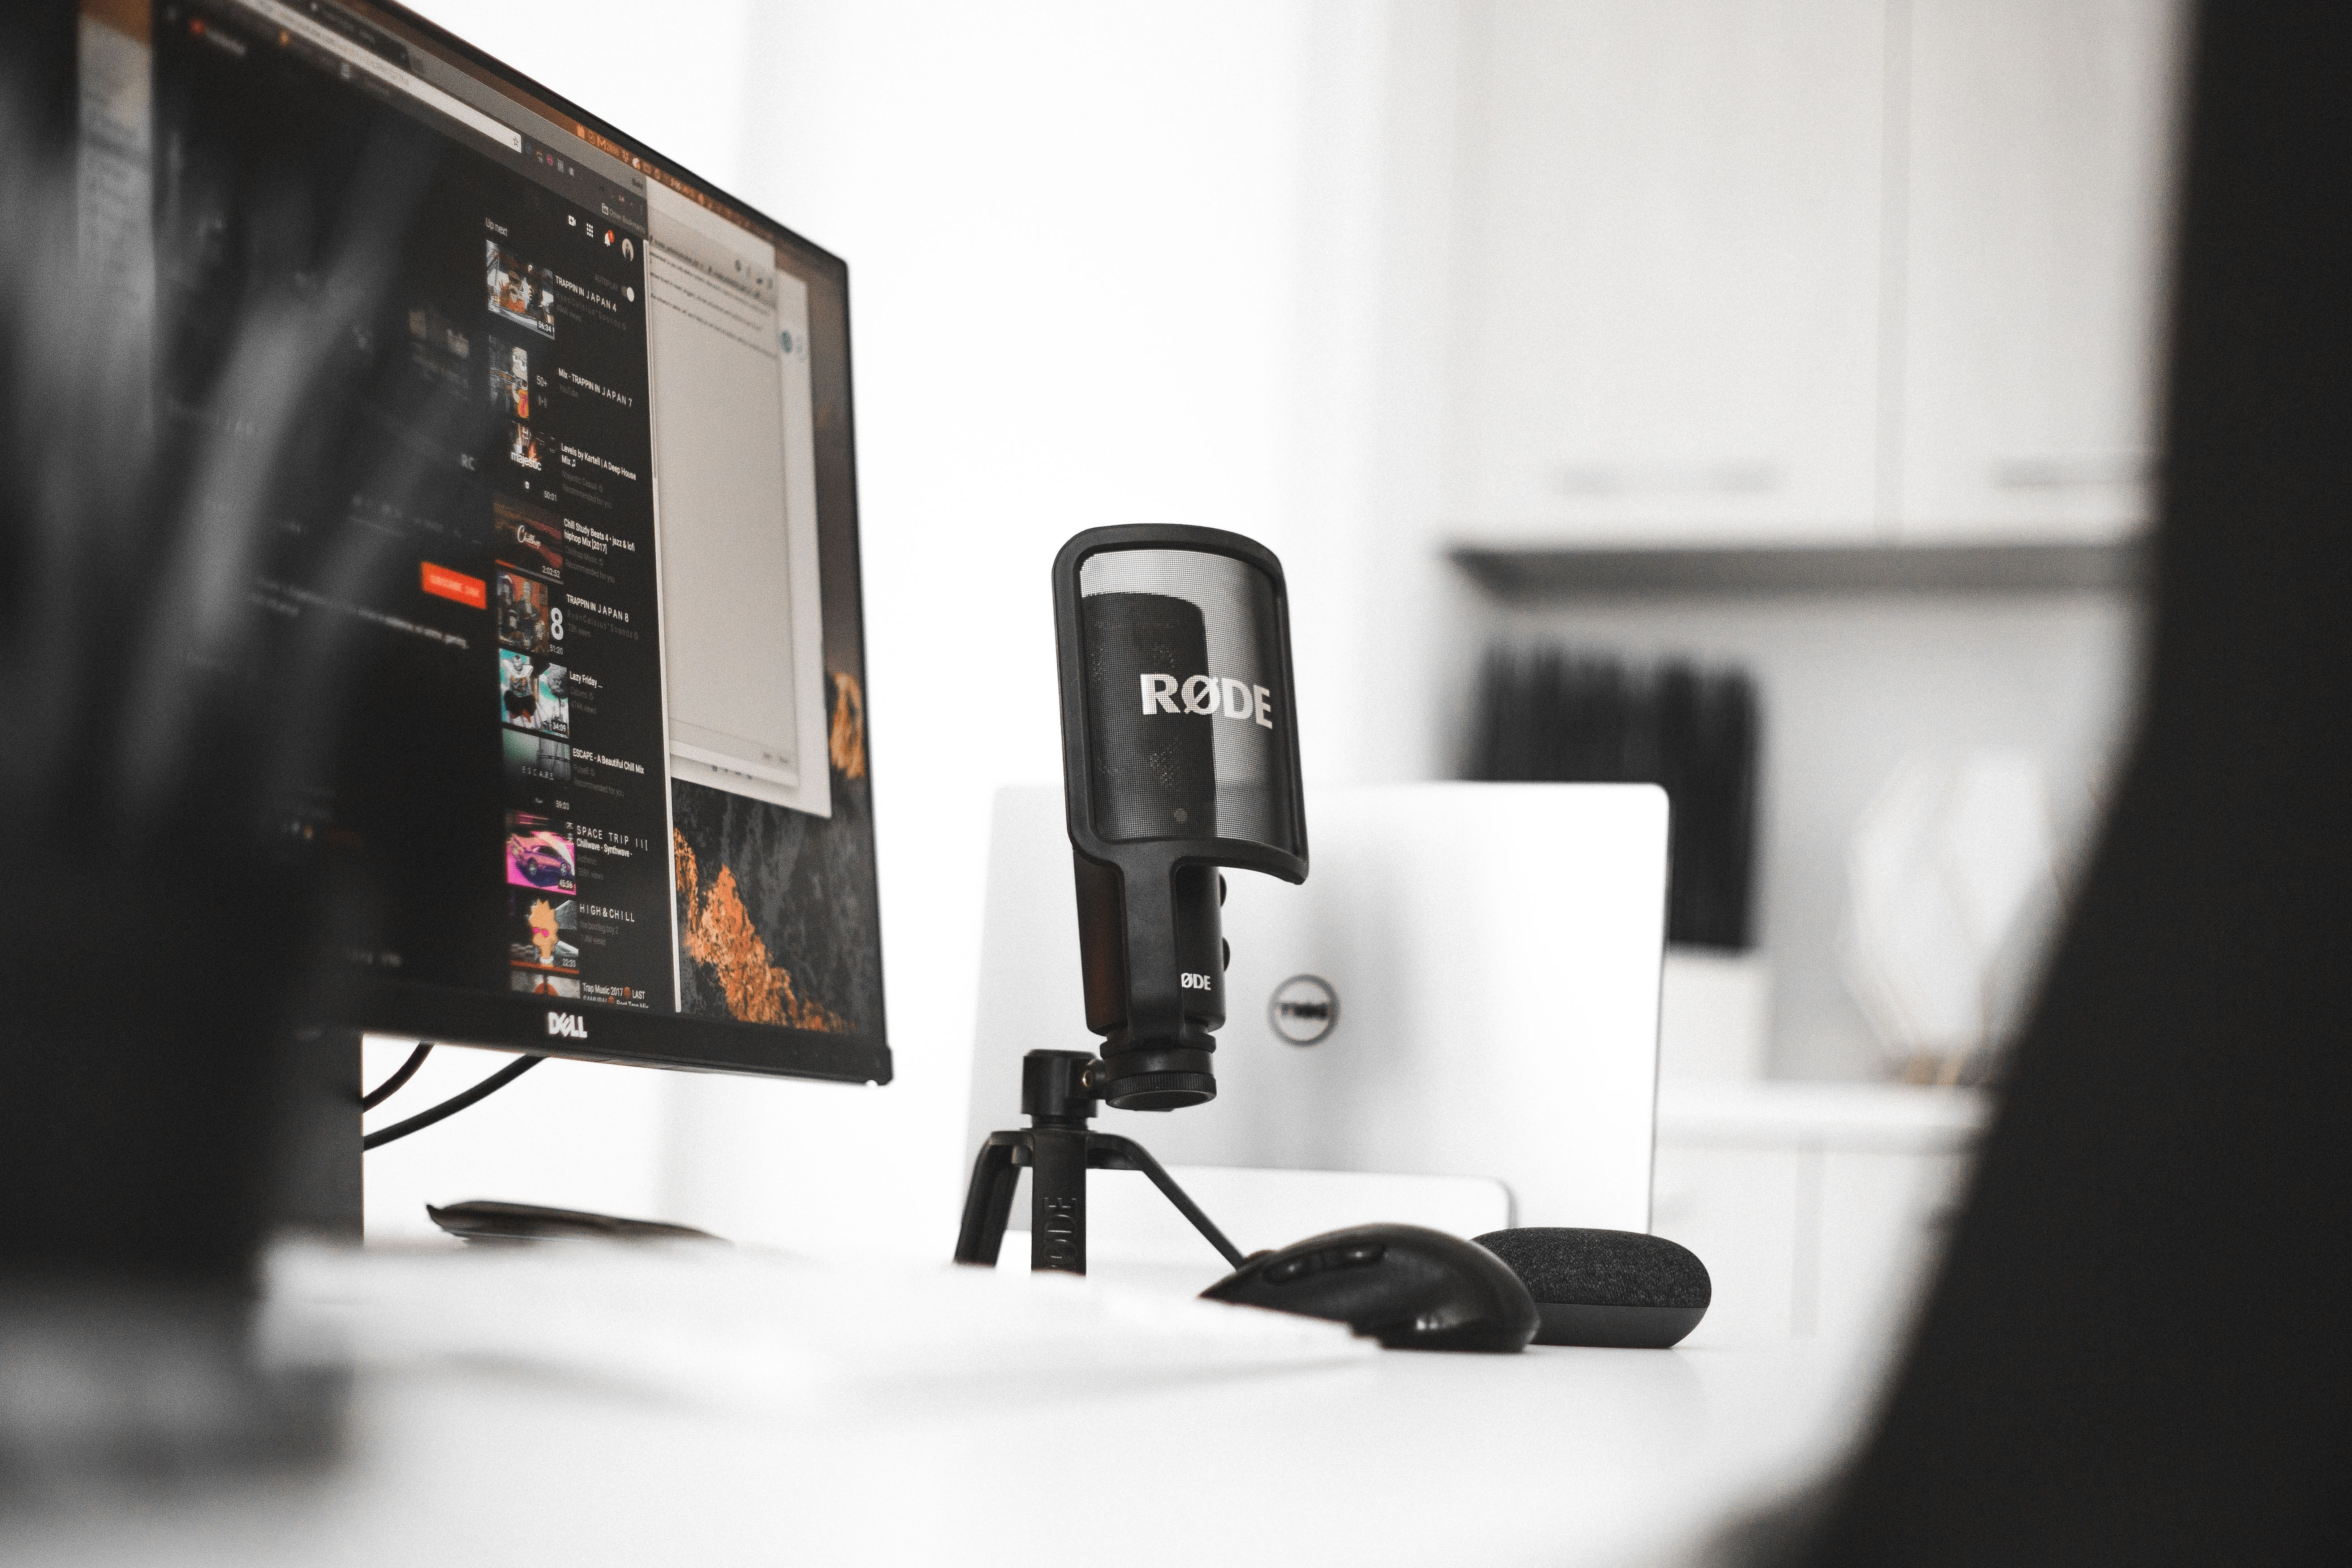 black Rode condenser microphone beside computer monitor